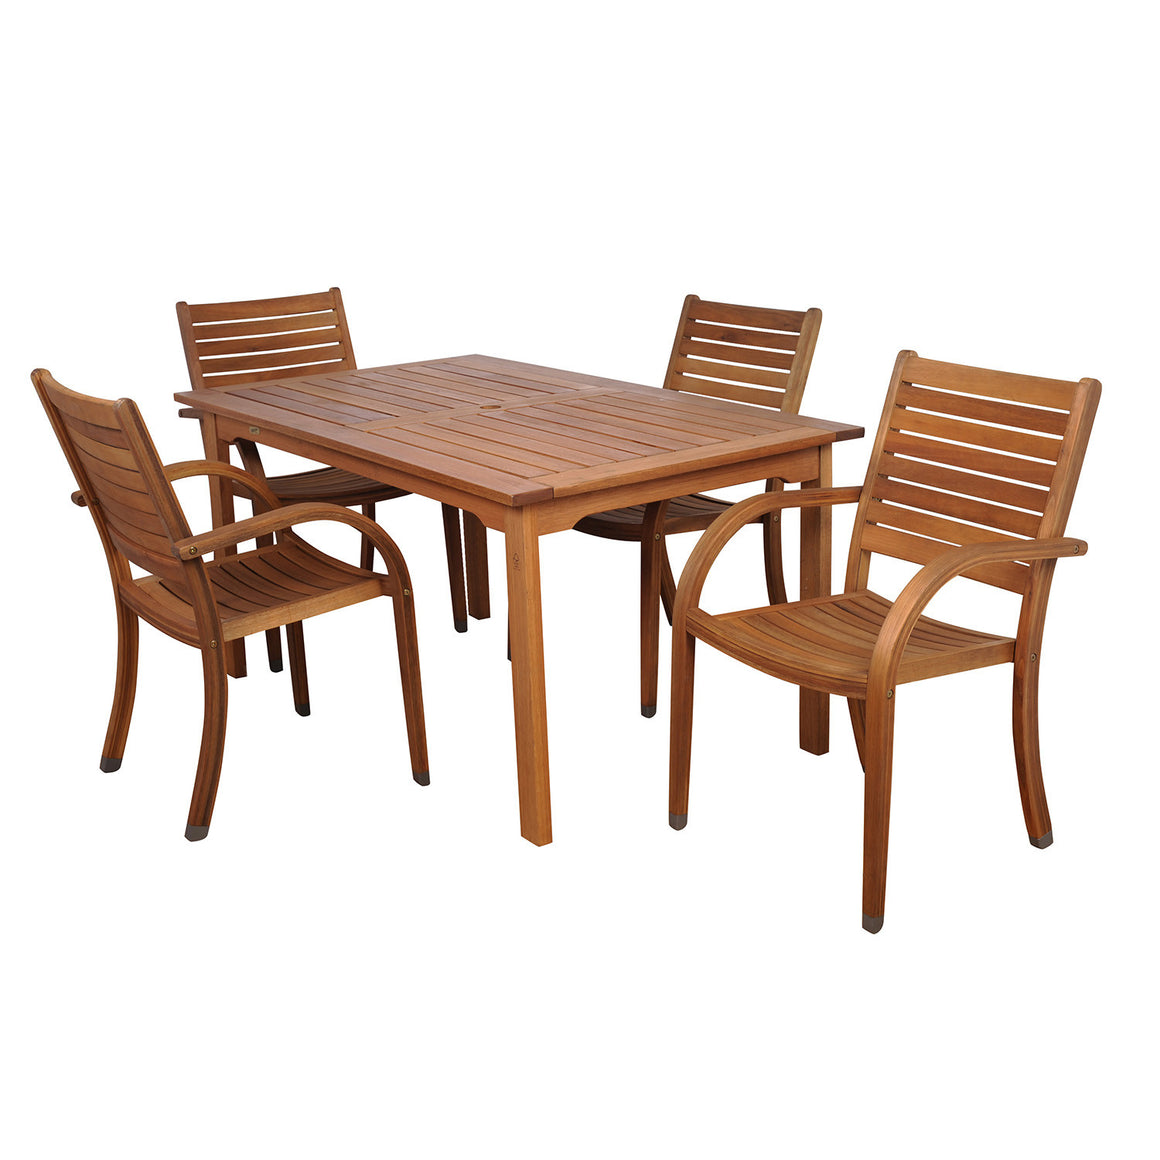 Arizona 5 Piece Eucalyptus Rectangular Patio Dining Set , International Home Miami- grayburd